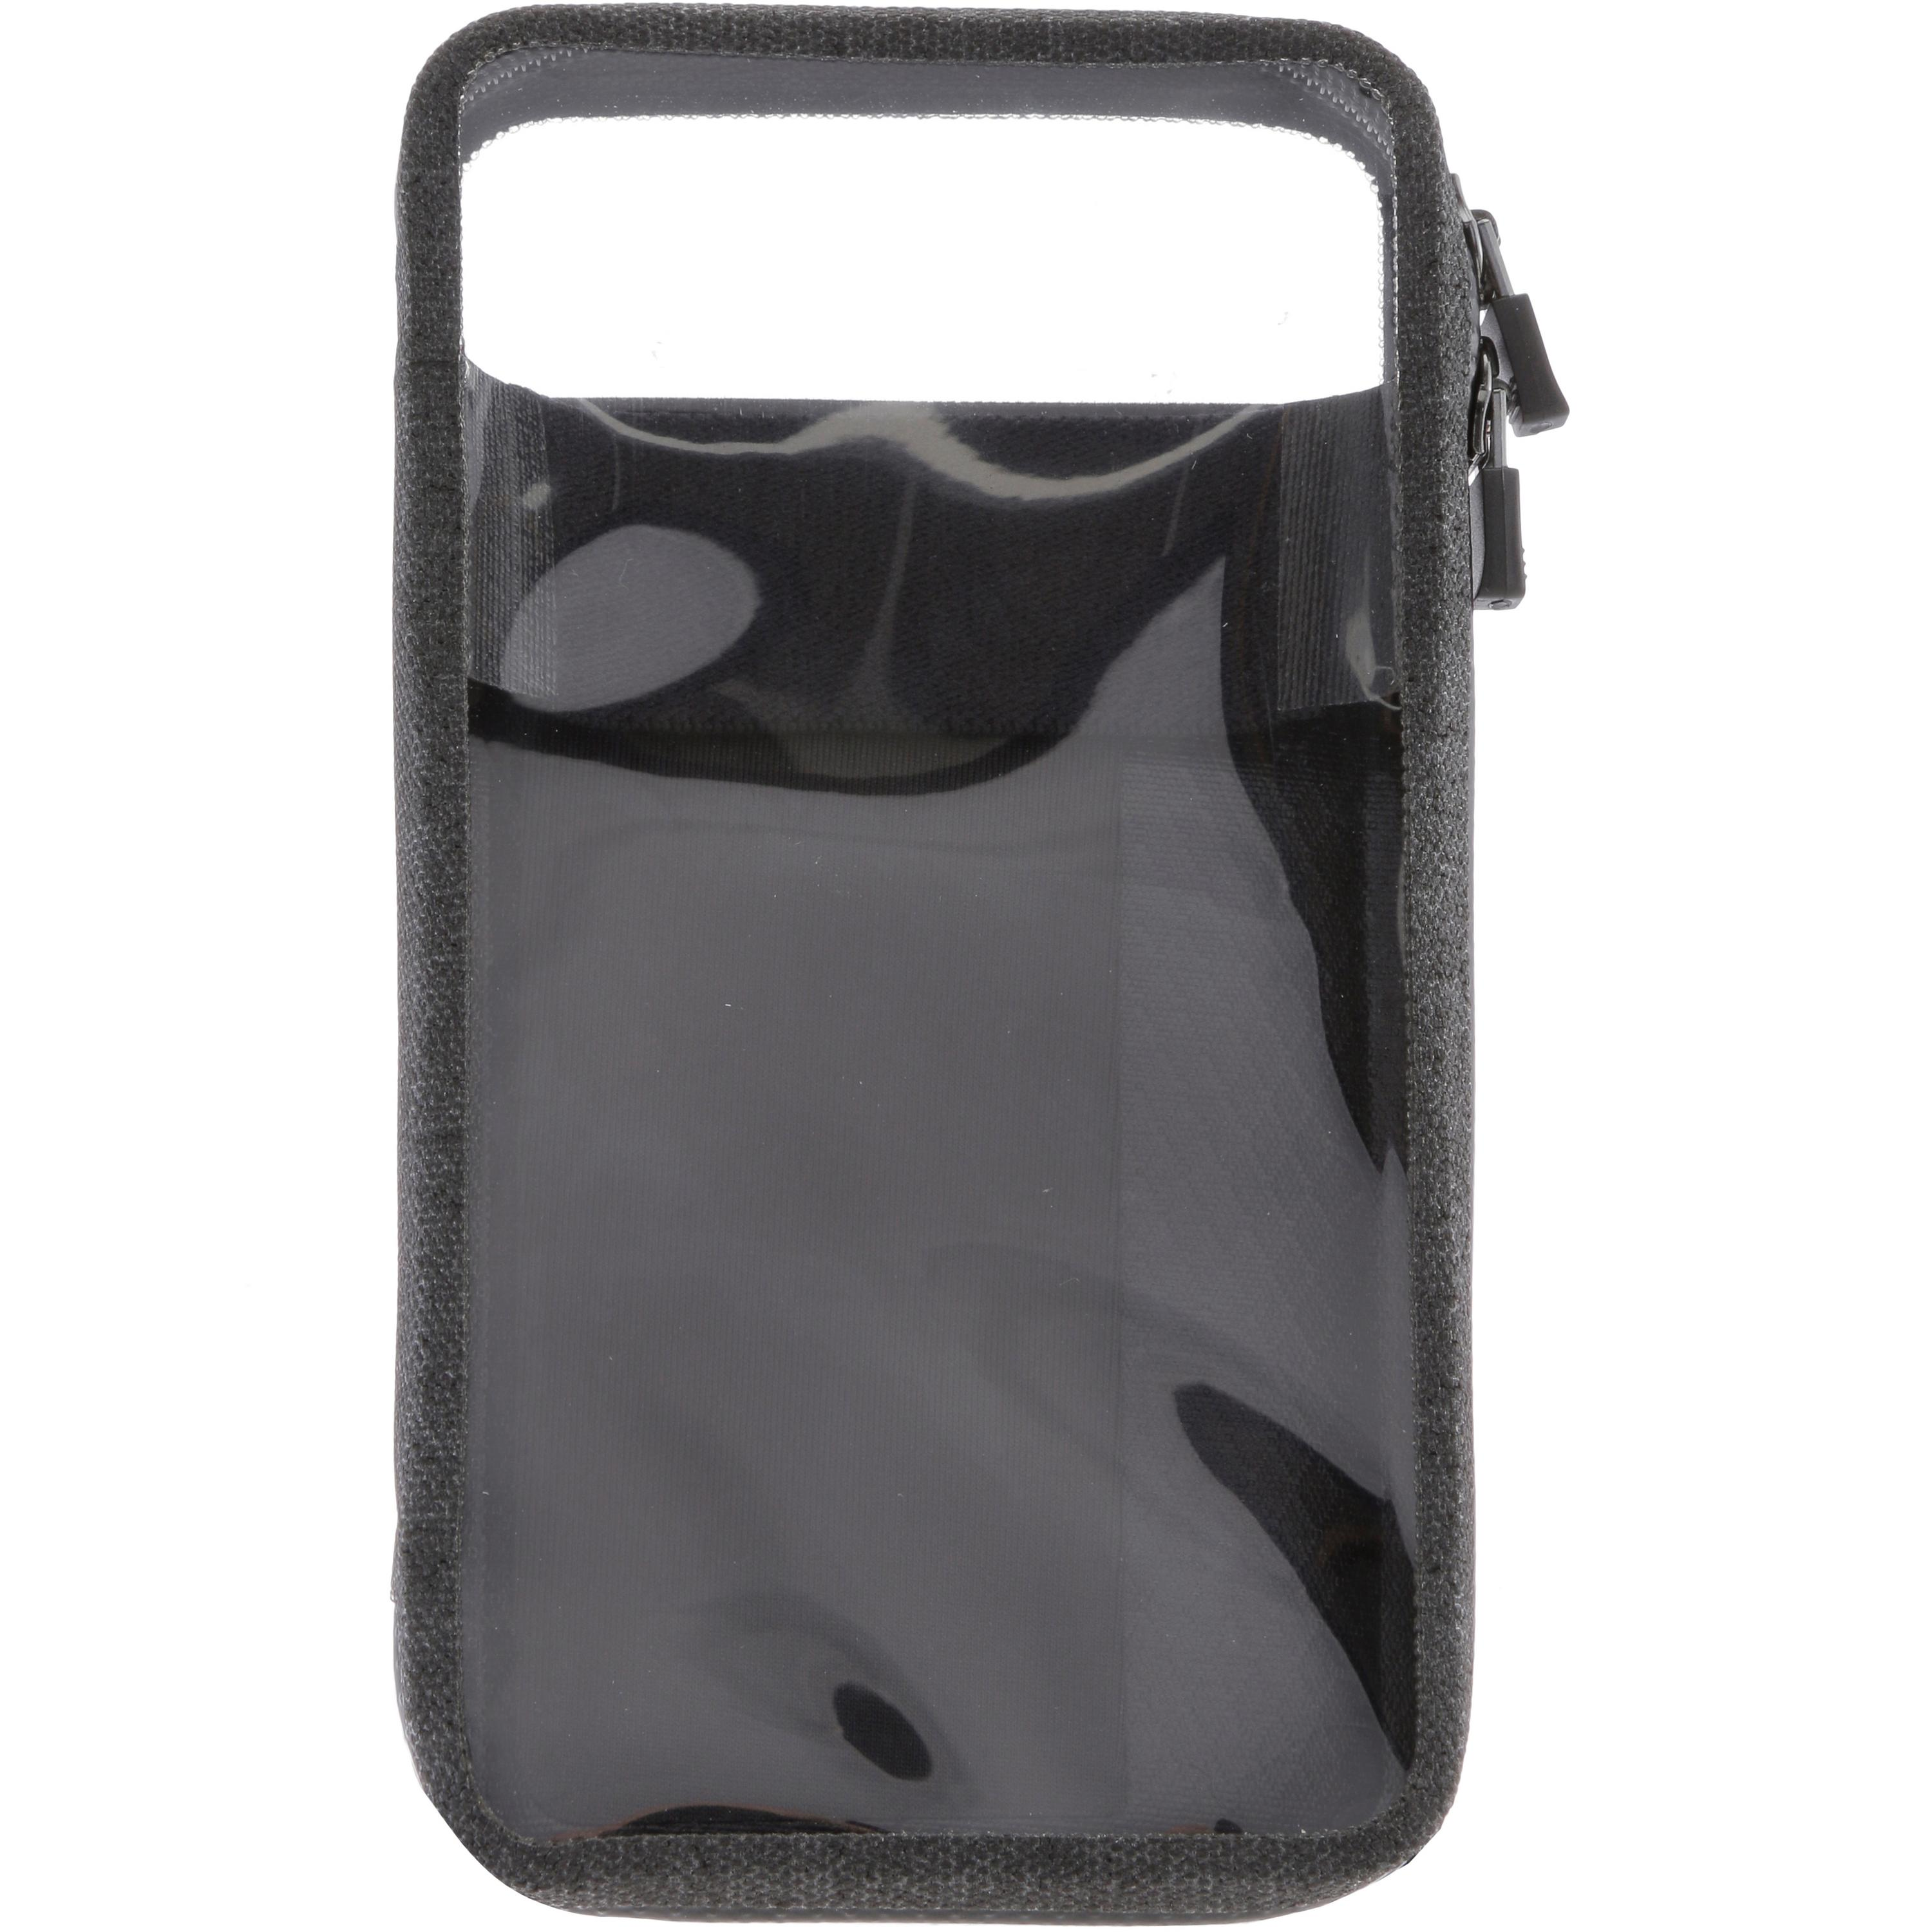 Image of GripGrab Cycling Wallet for iphone Fahrradtasche